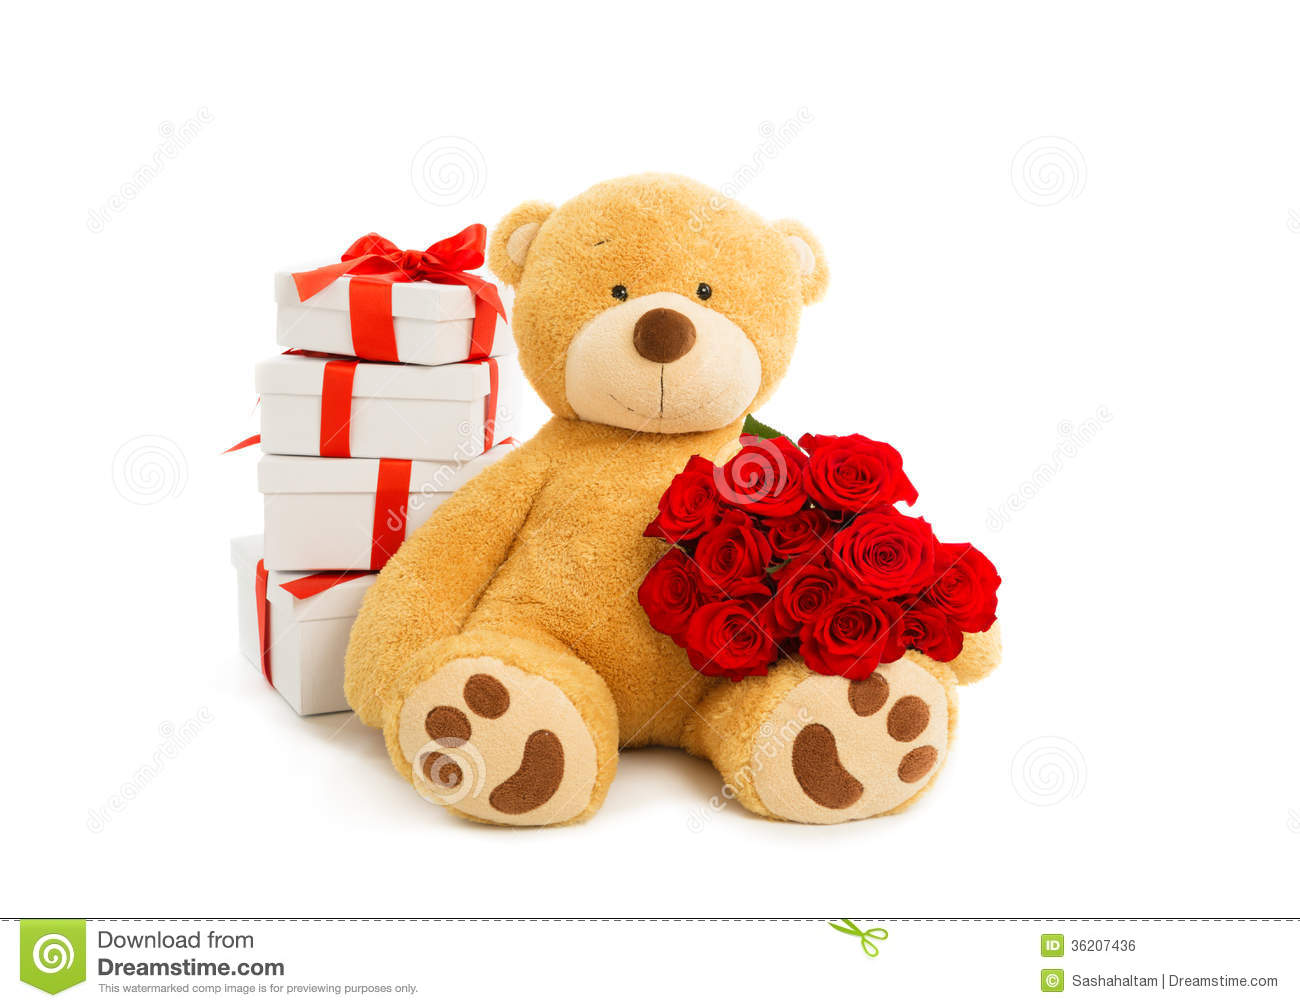 single on valentines day quotes images - Teddy Bear With Gift Box And Bouquet Red Roses Royalty